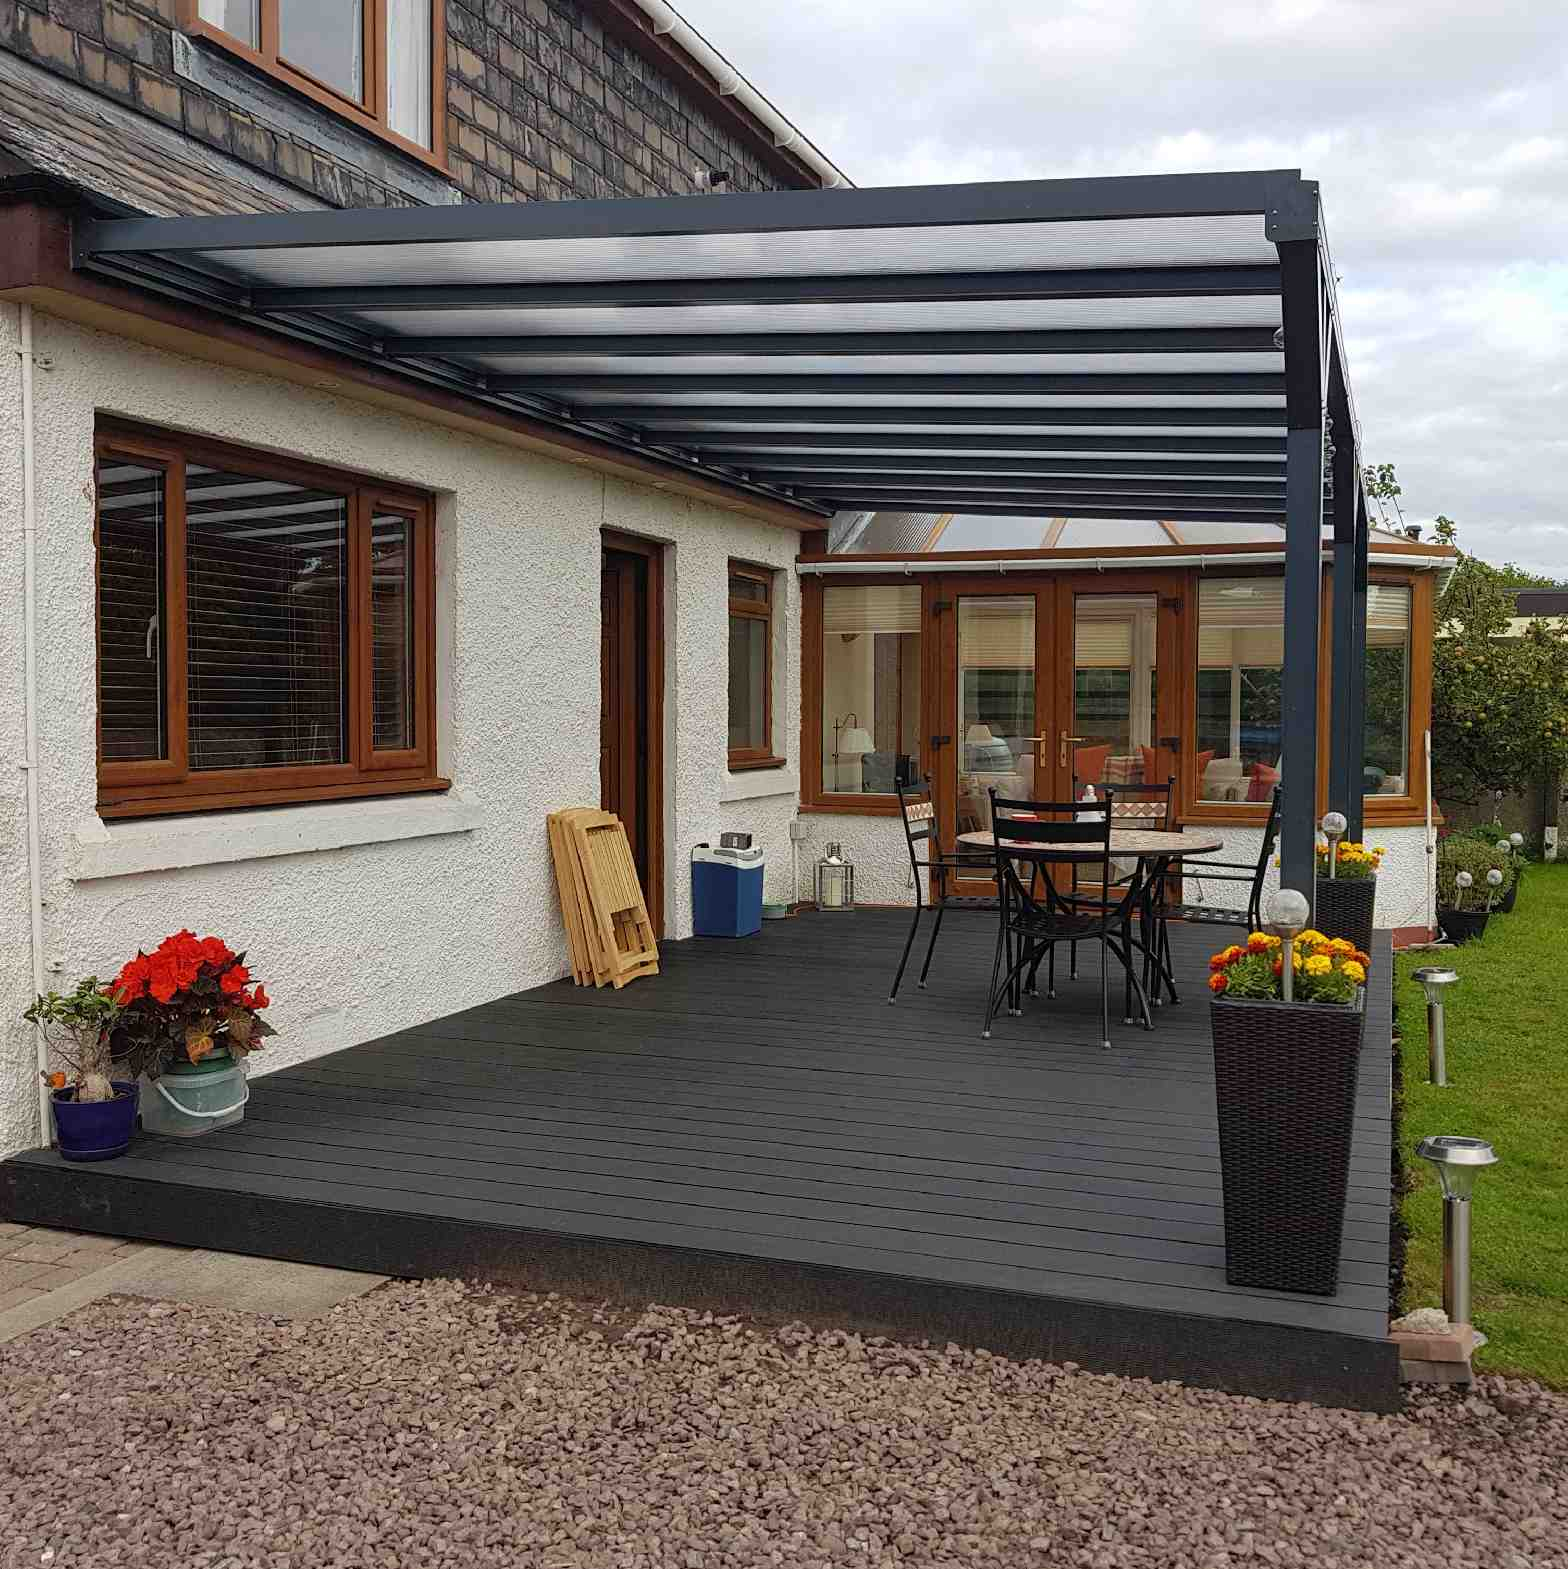 Buy Omega Verandah, Anthracite Grey, 16mm Polycarbonate Glazing - 9.9m (W) x 4.0m (P), (5) Supporting Posts online today